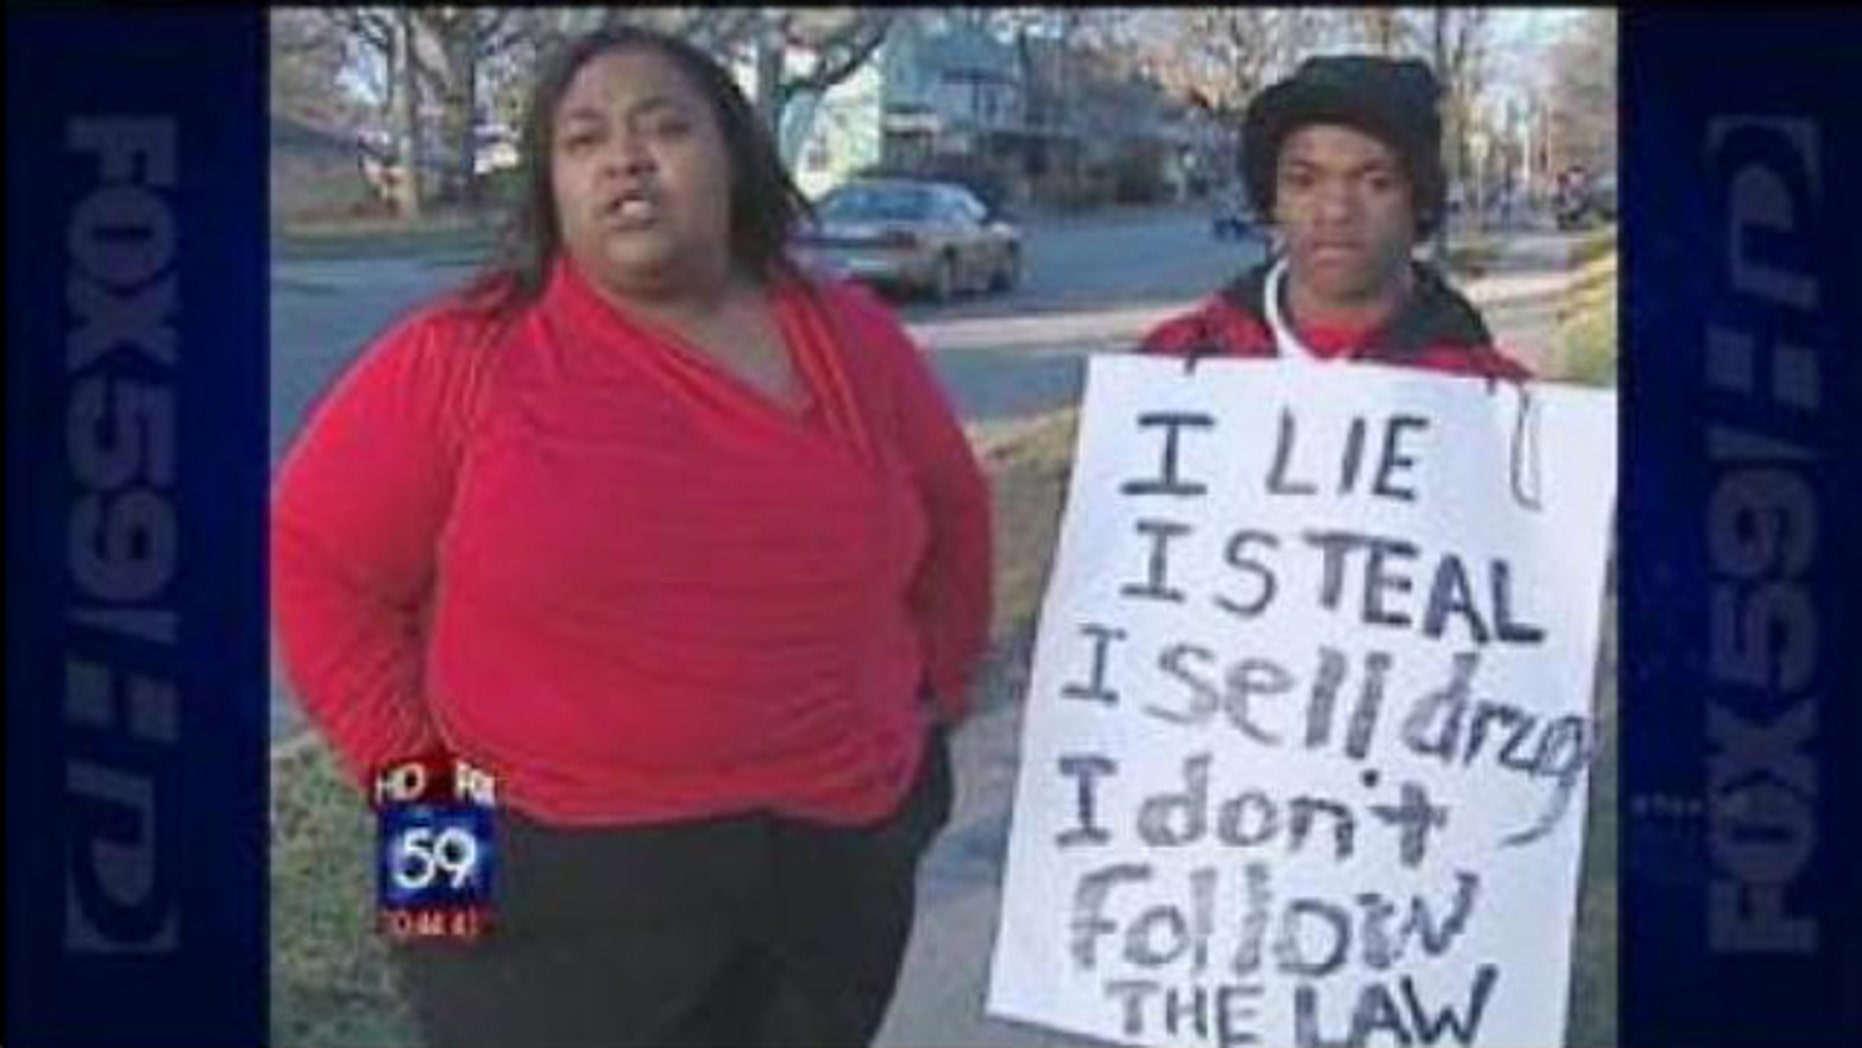 Dynesha Lax, left, forced her 14-year-old son to wear the sign on a street corner.